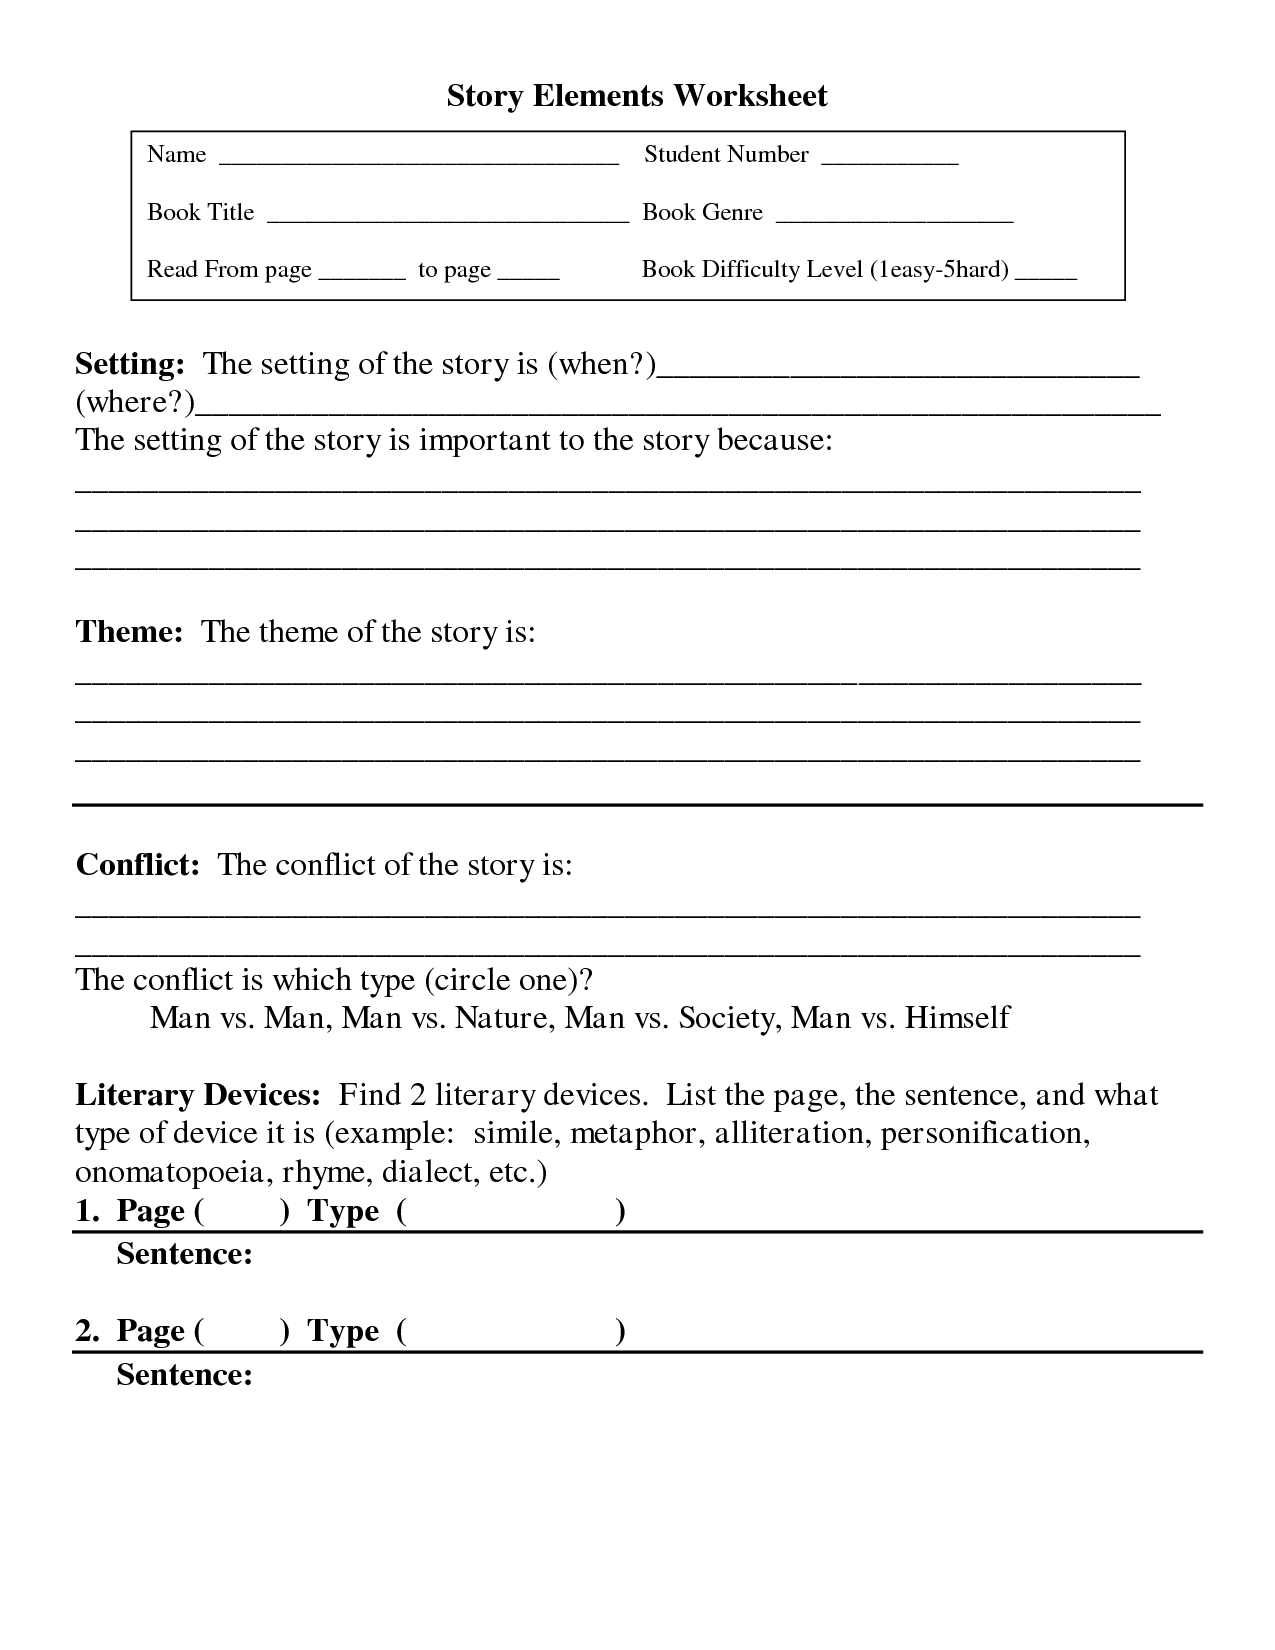 15 Best Images Of Literary Elements Worksheets